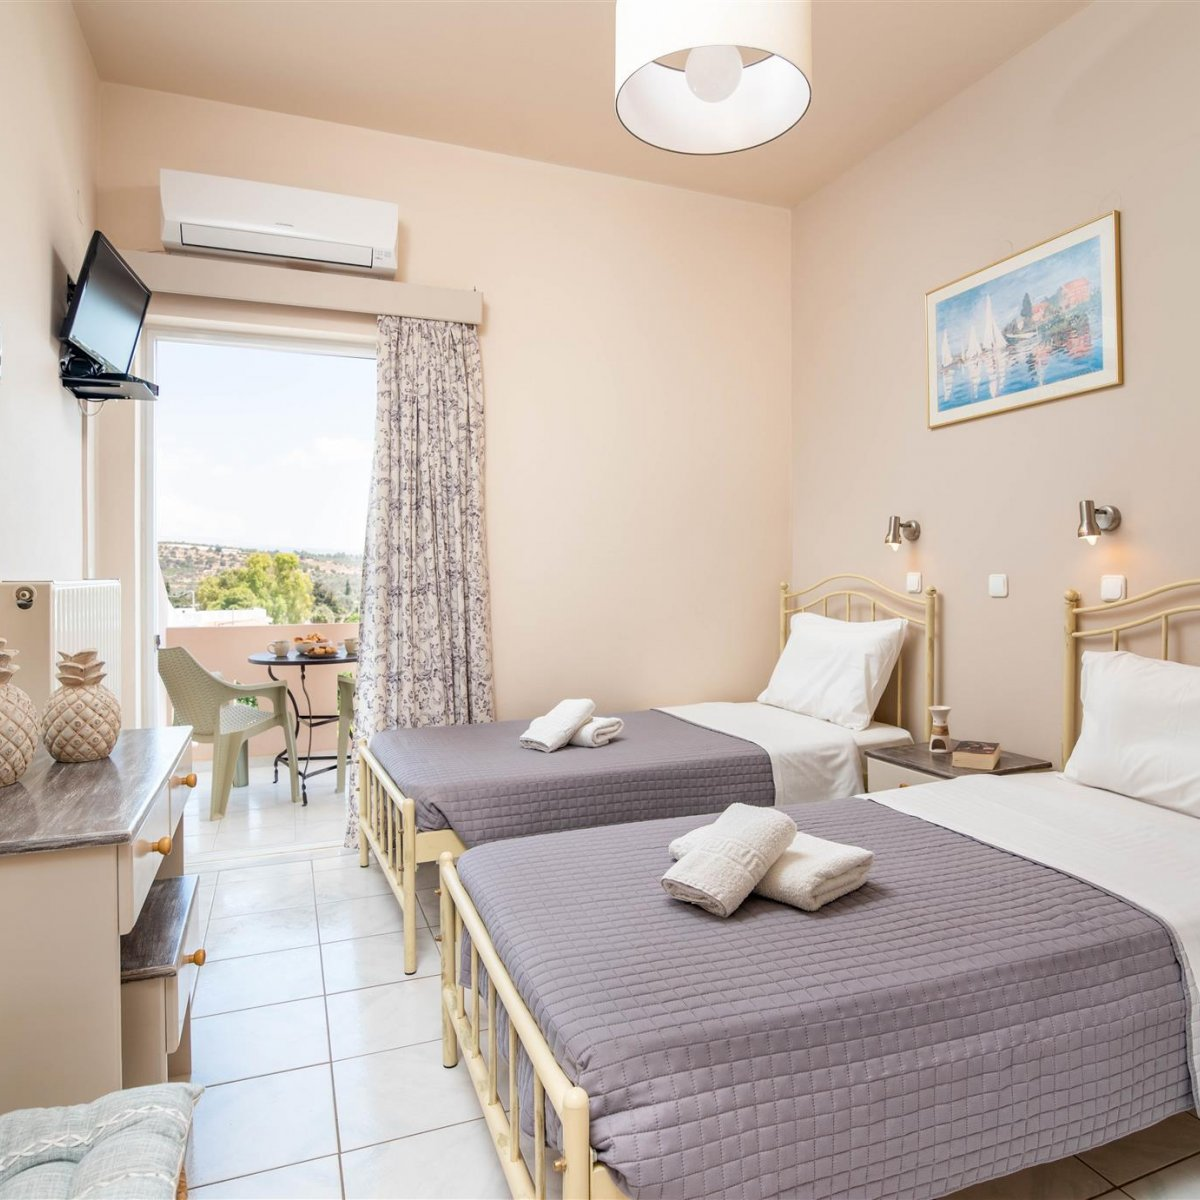 Filia Holidays - Standard double rooms with Kitchen in Pitsidia